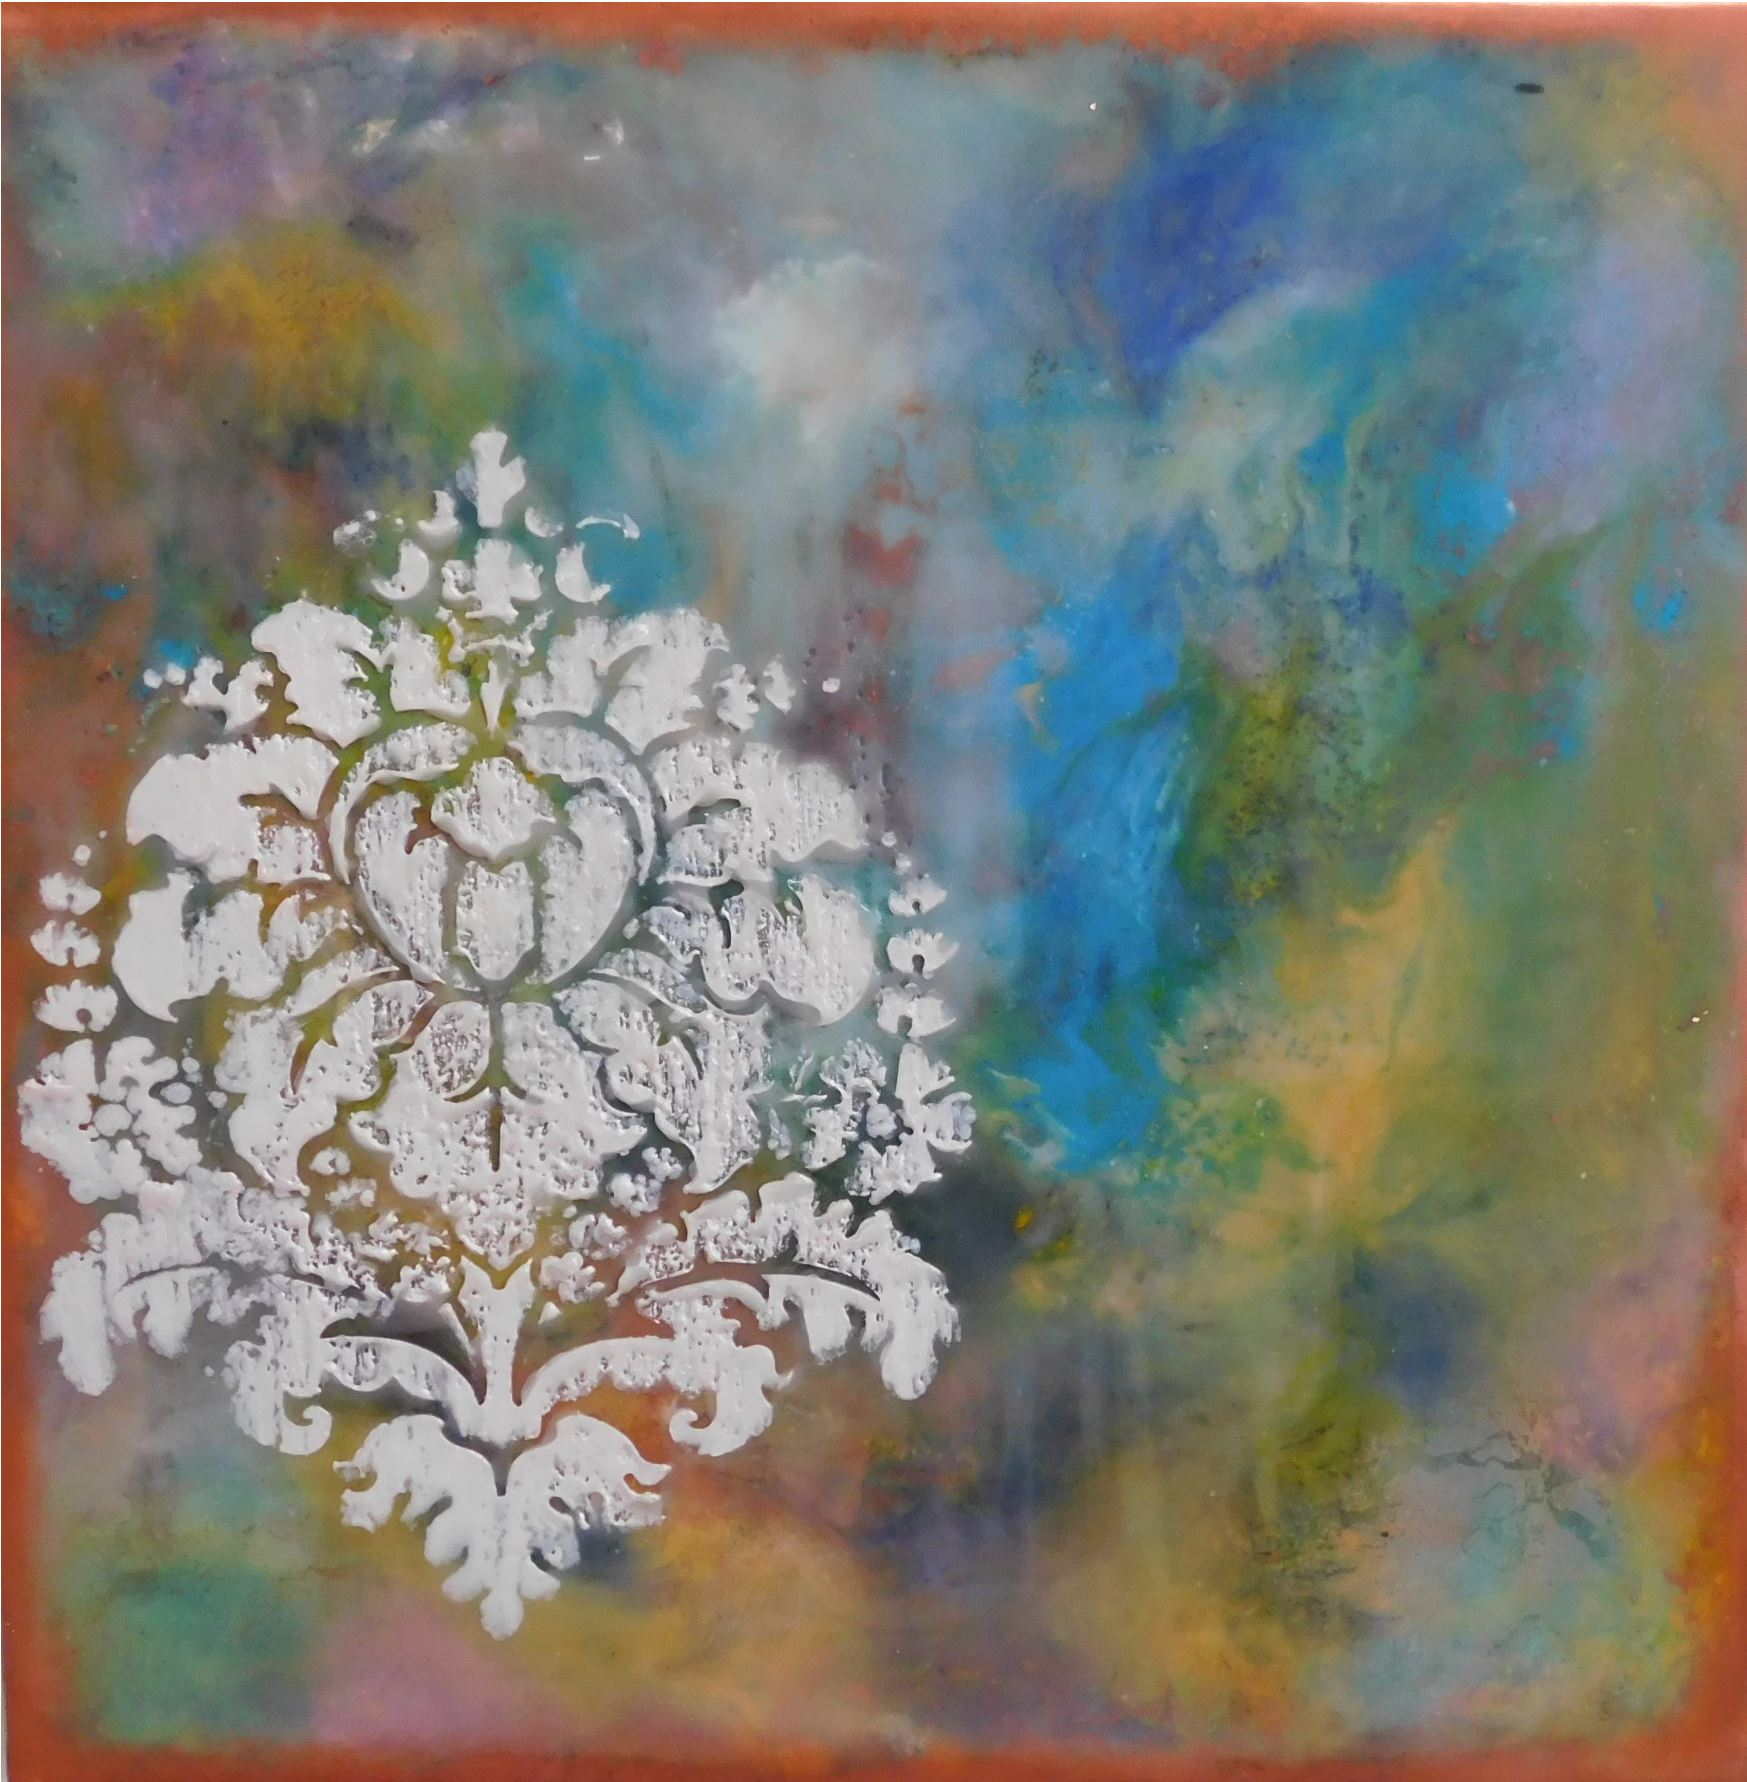 Tranquility, 2018, Encaustic, 12 x 12 x 1 inches, $300